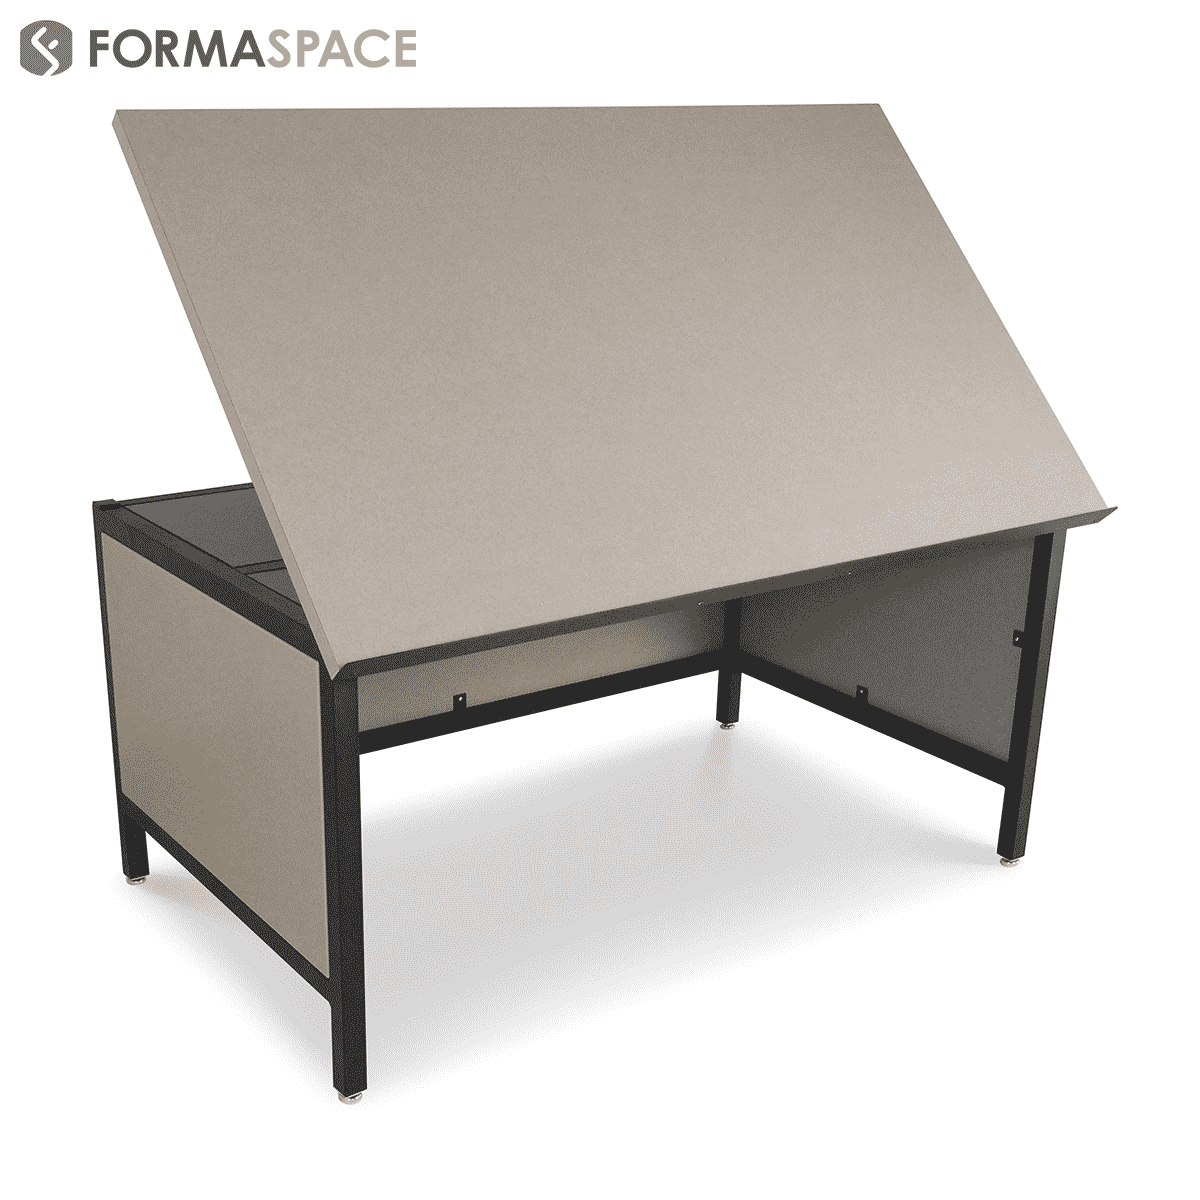 Drafting table with lower modesty panels